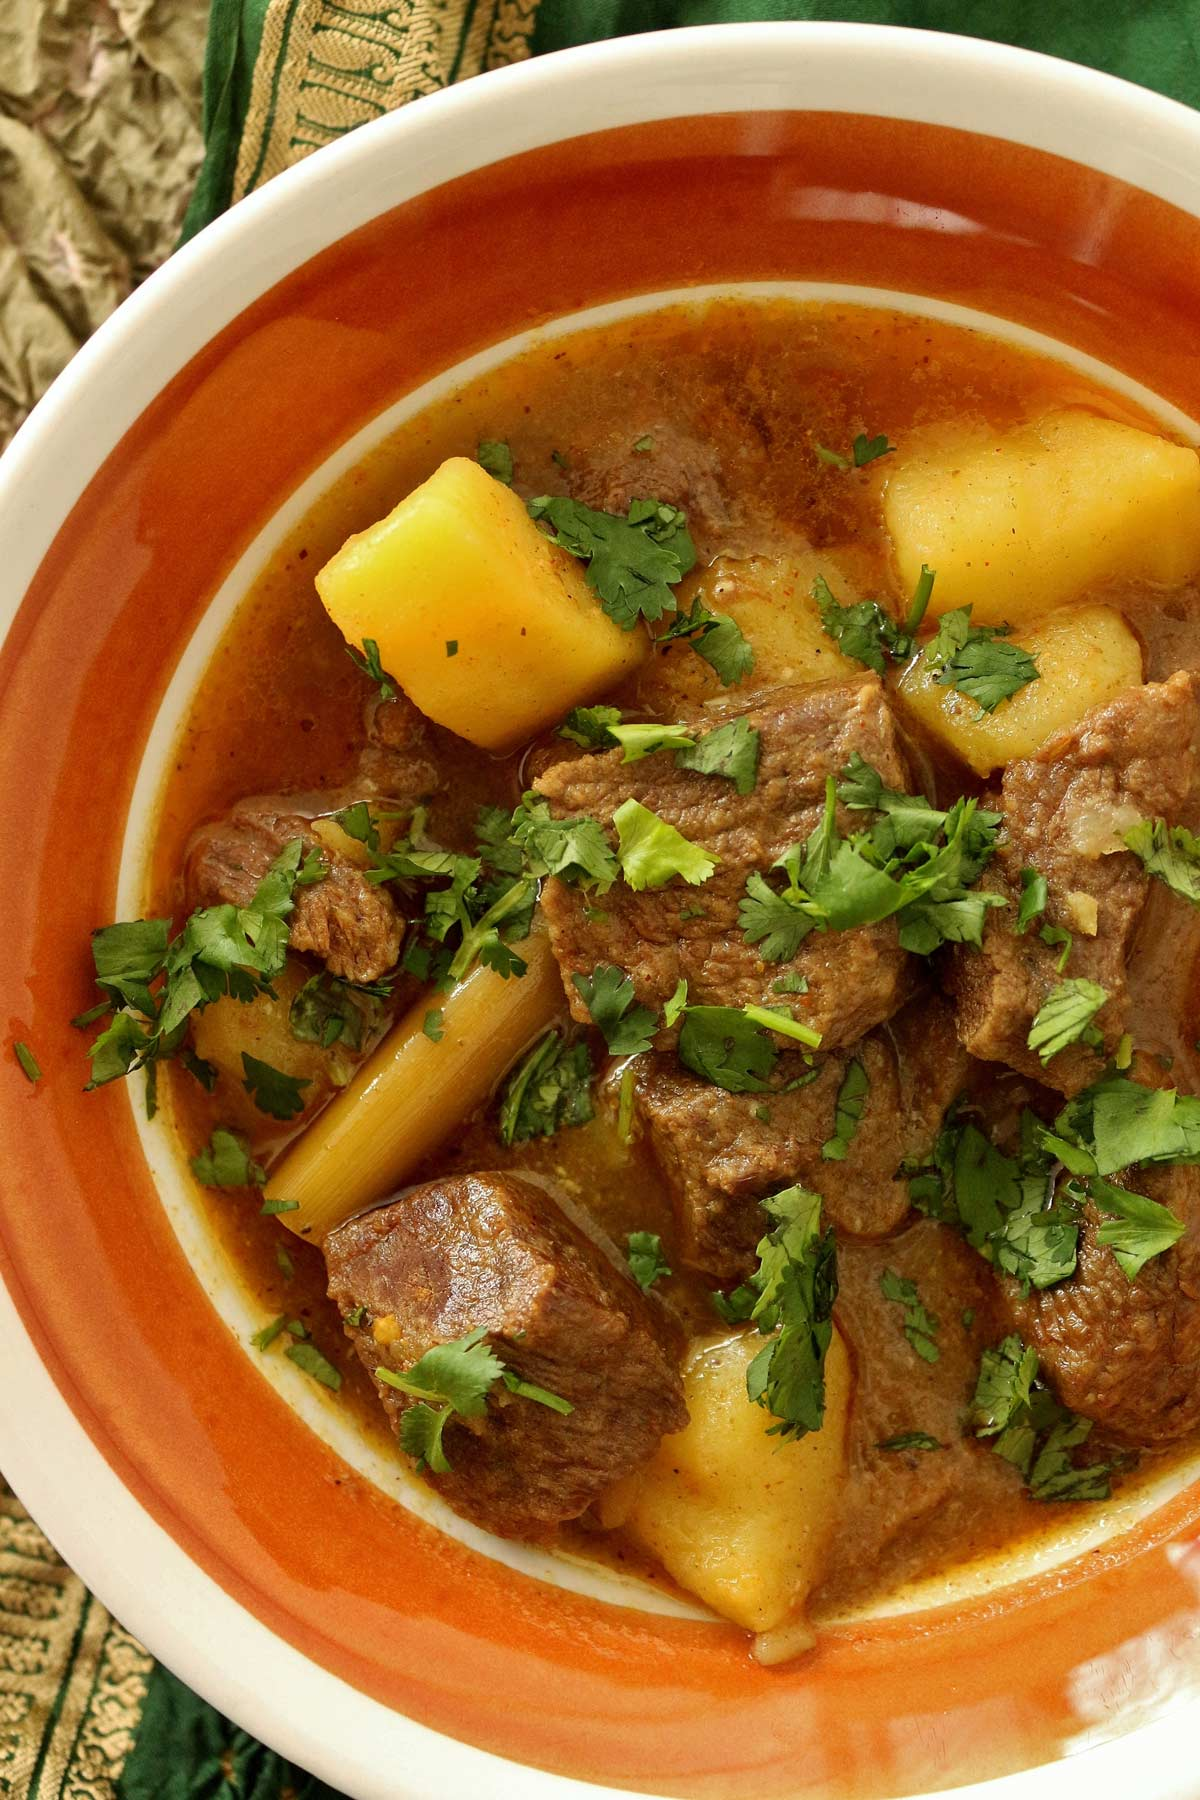 A close up of Burmese beef curry with potatoes, garnished with cilantro.